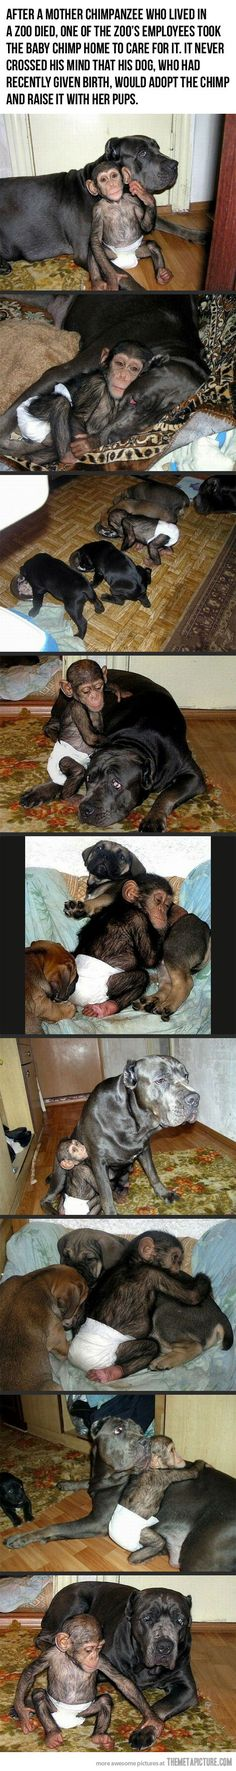 Dog Adopts Baby Chimpanzee